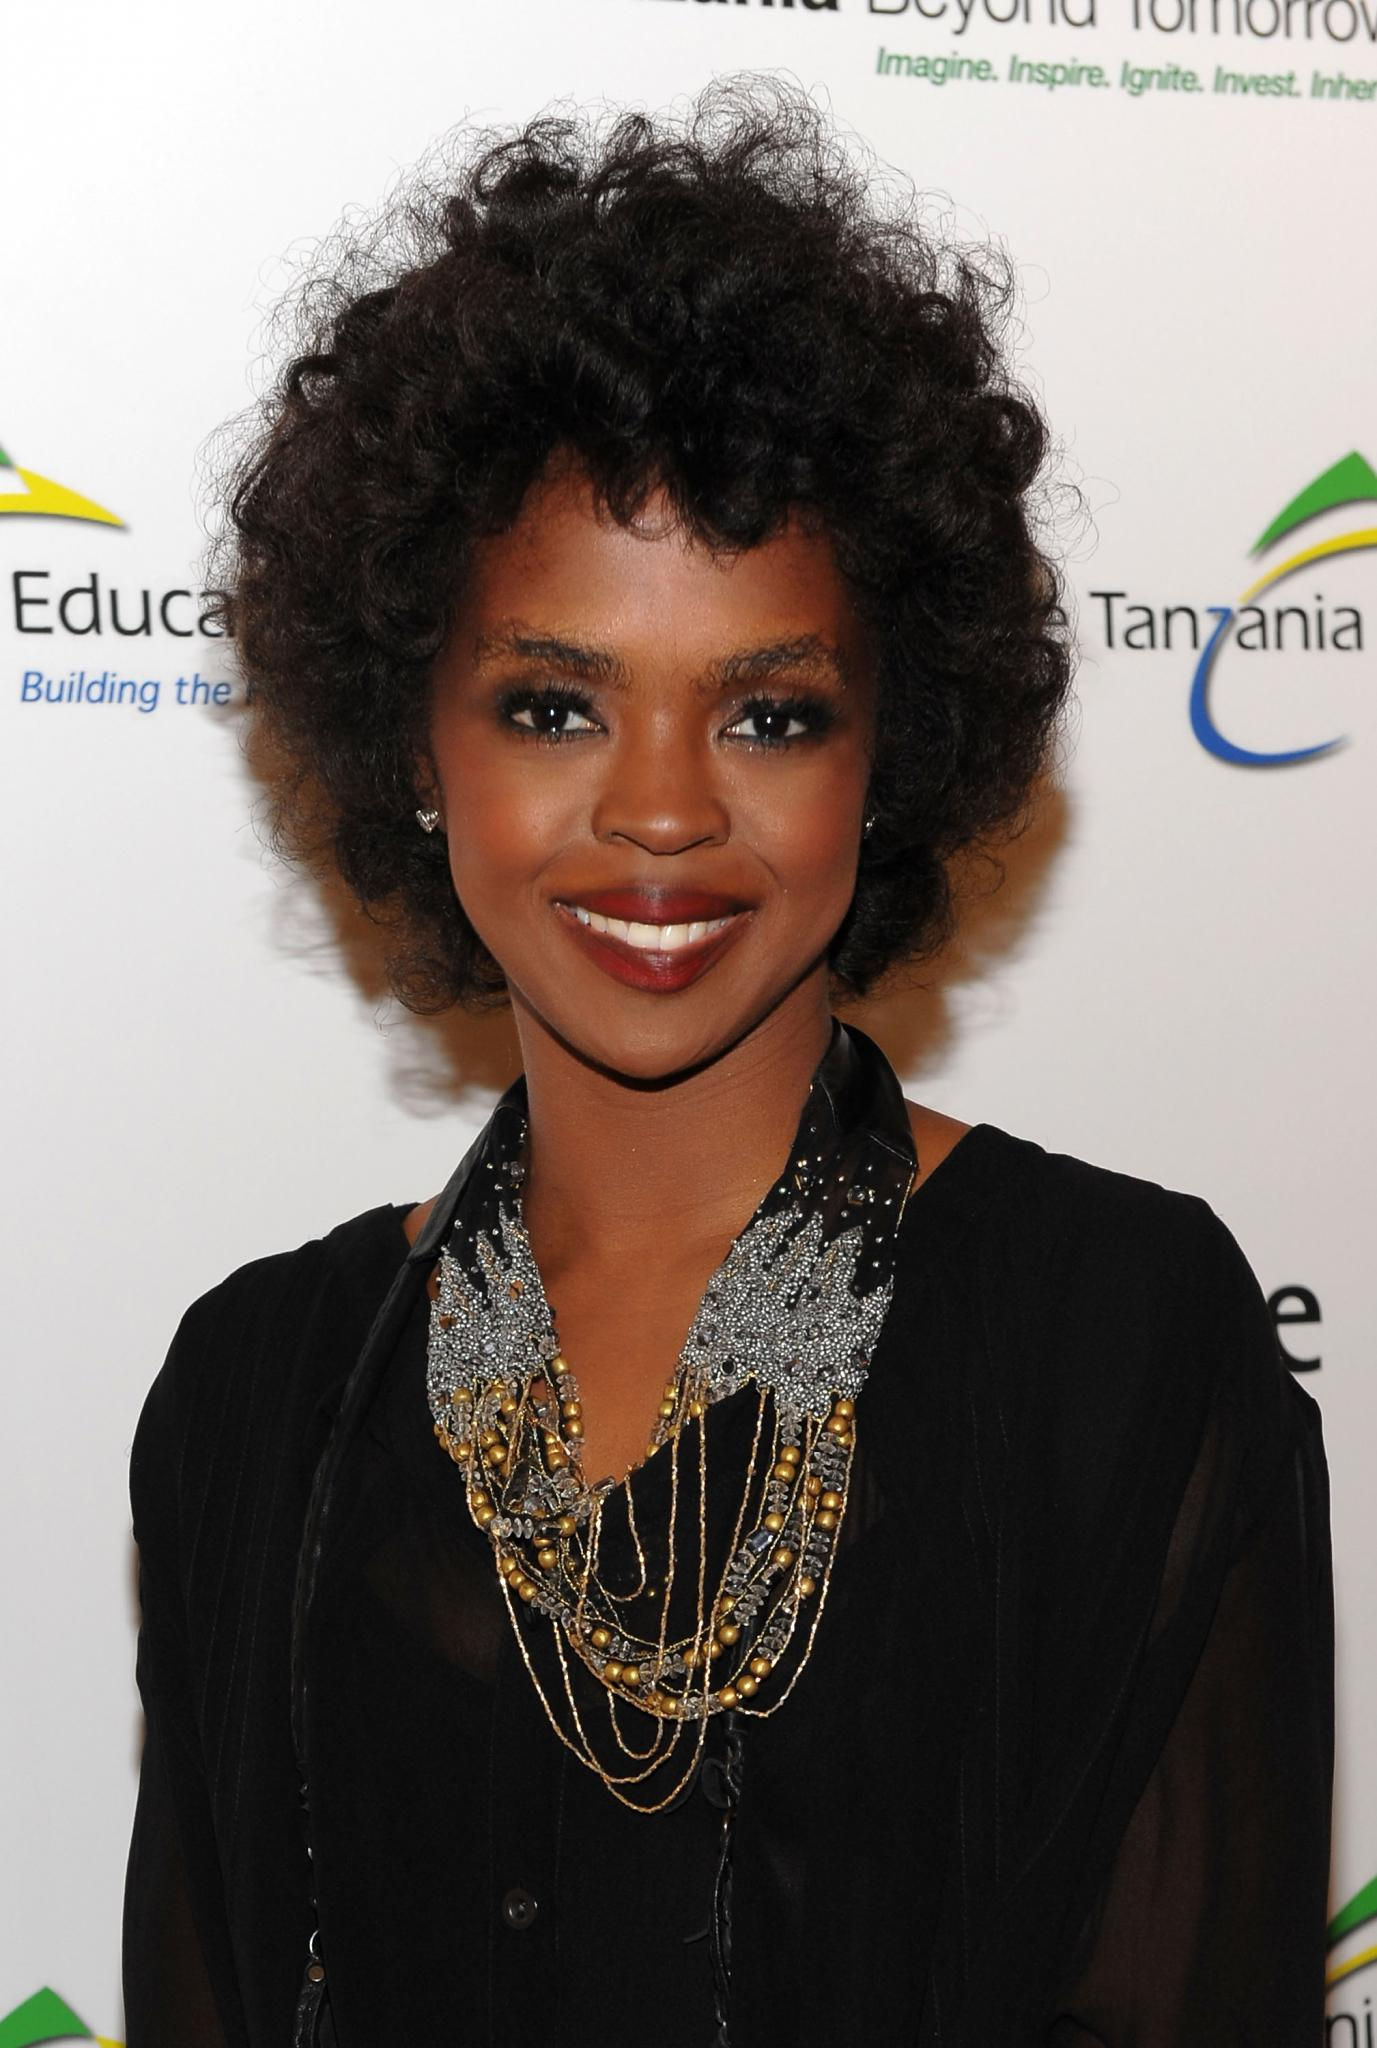 Lauryn Hill Criticized by Academy President for Missing Grammy Performance – But She Says She Never Promised to Play the Show